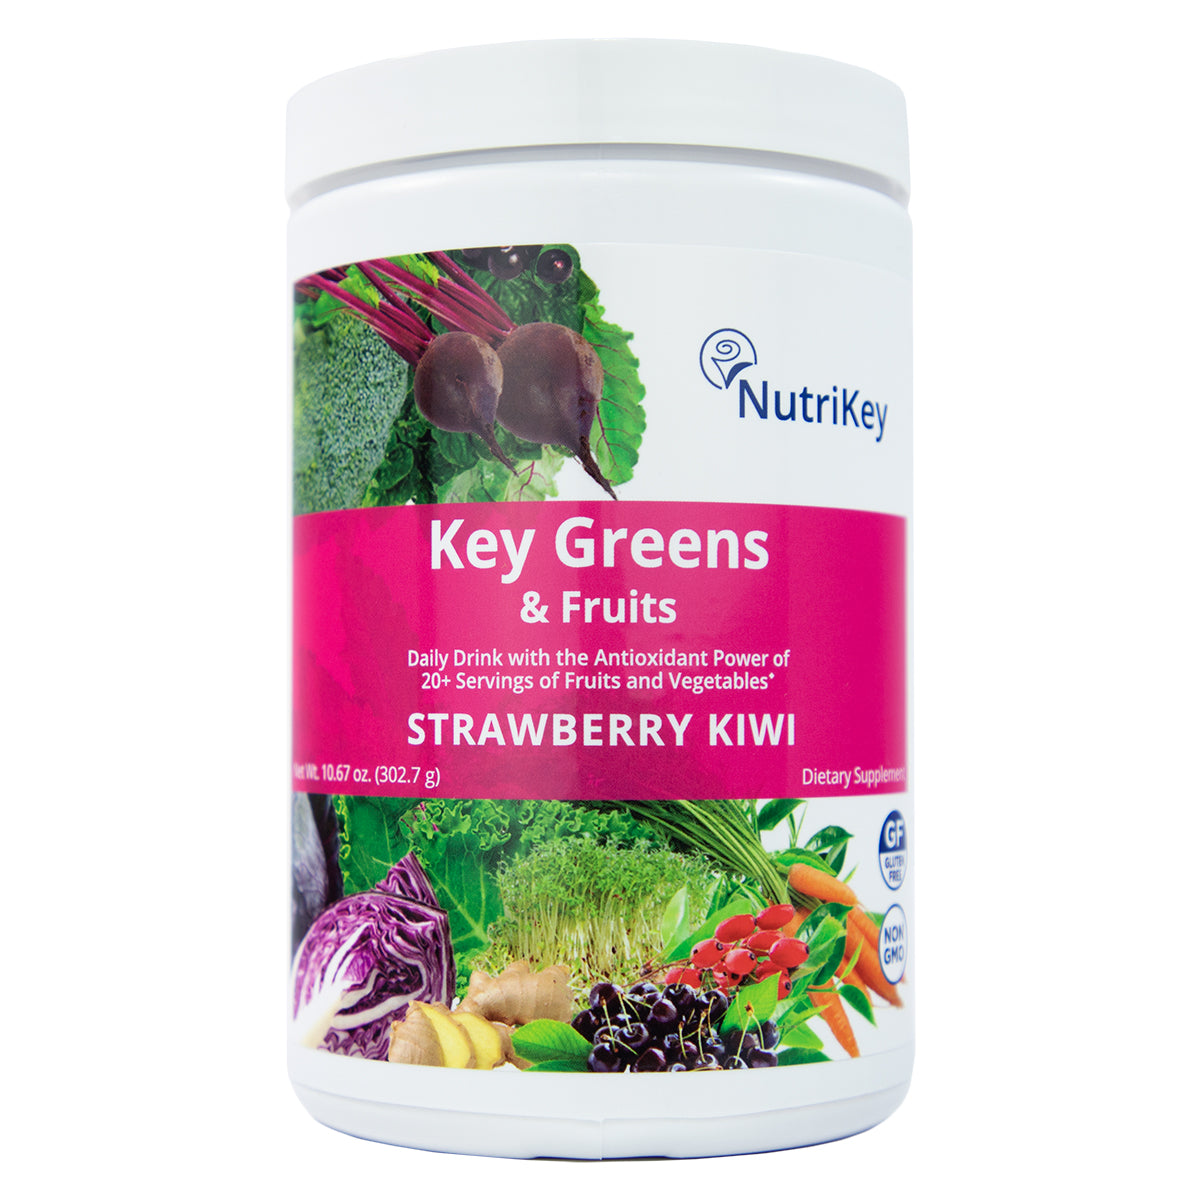 Key Greens & Fruits Canister, Strawberry Kiwi